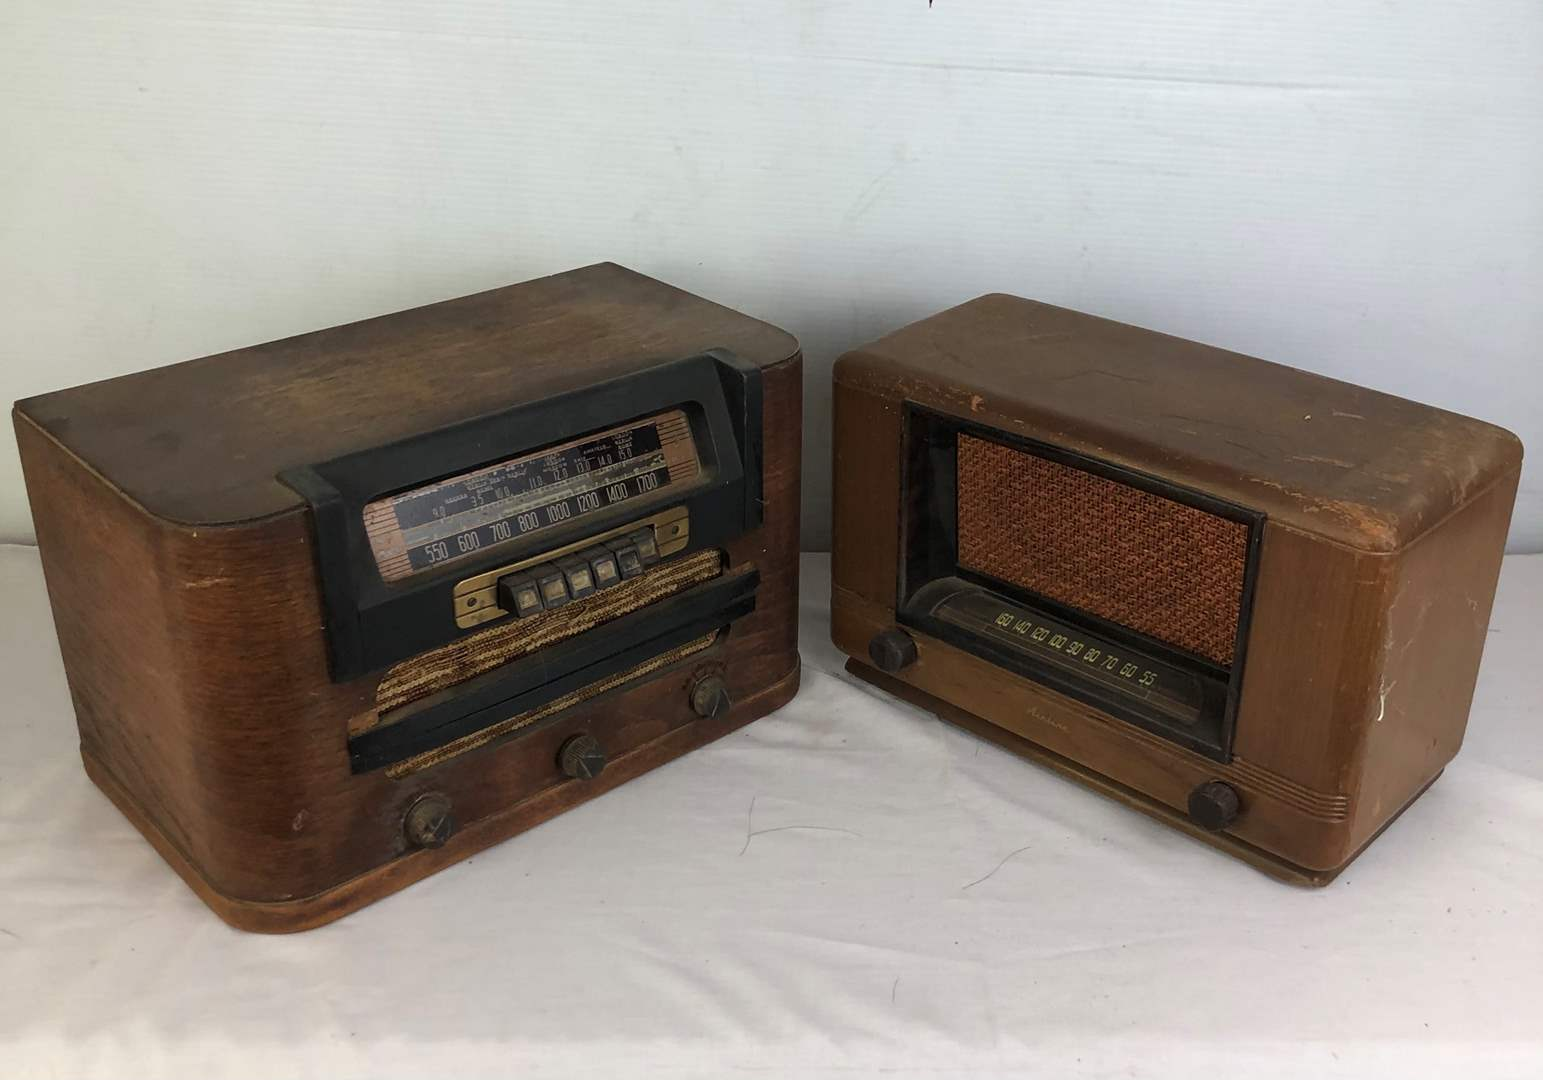 Lot # 133 - 2 Vintage Tube Radios with Wood Cases (main image)